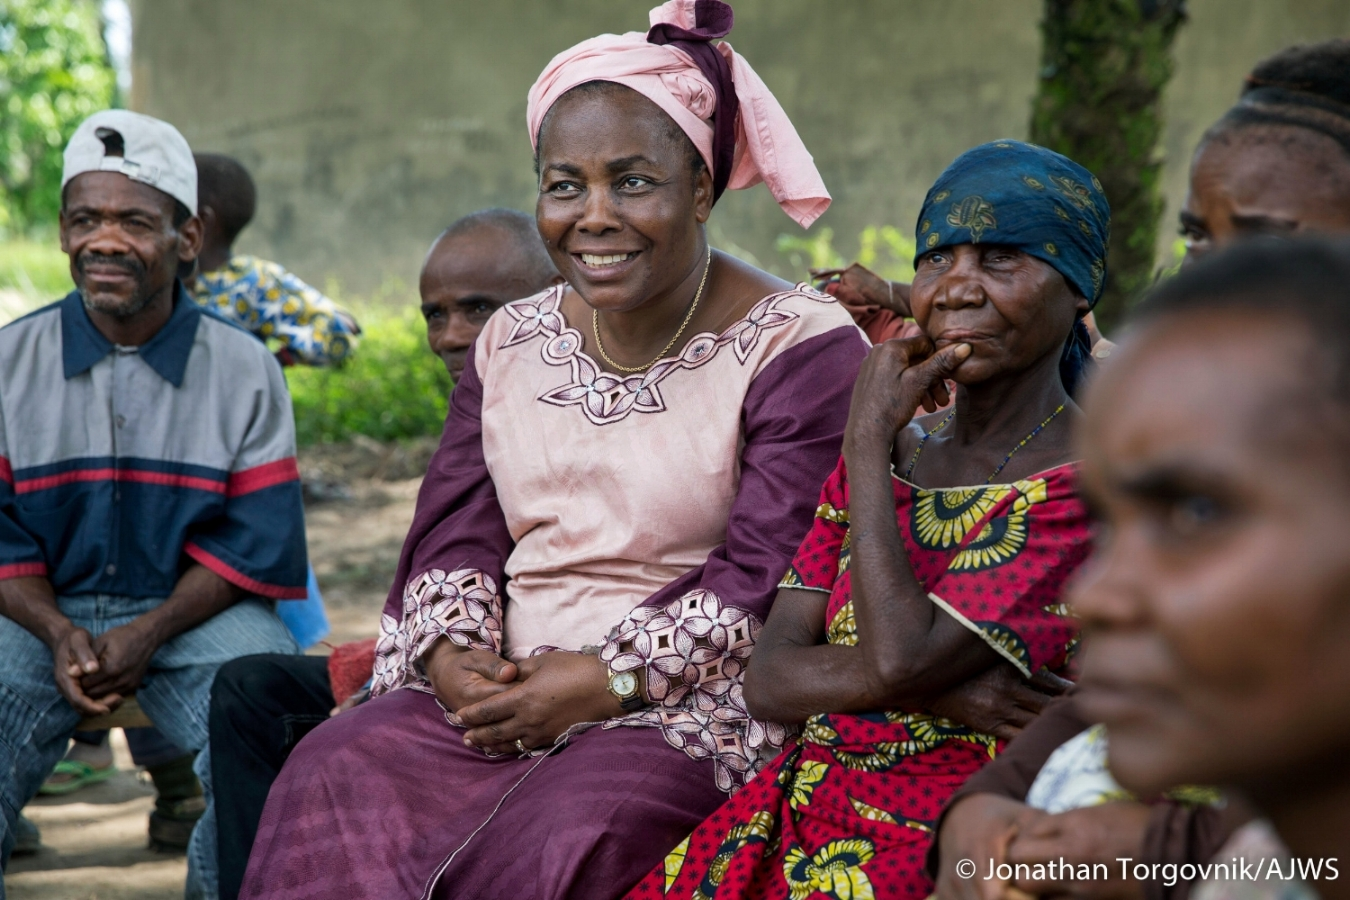 Julienne Lusenge, our partner in the Democratic Republic of Congo, received the 2018 International Women's Rights Award